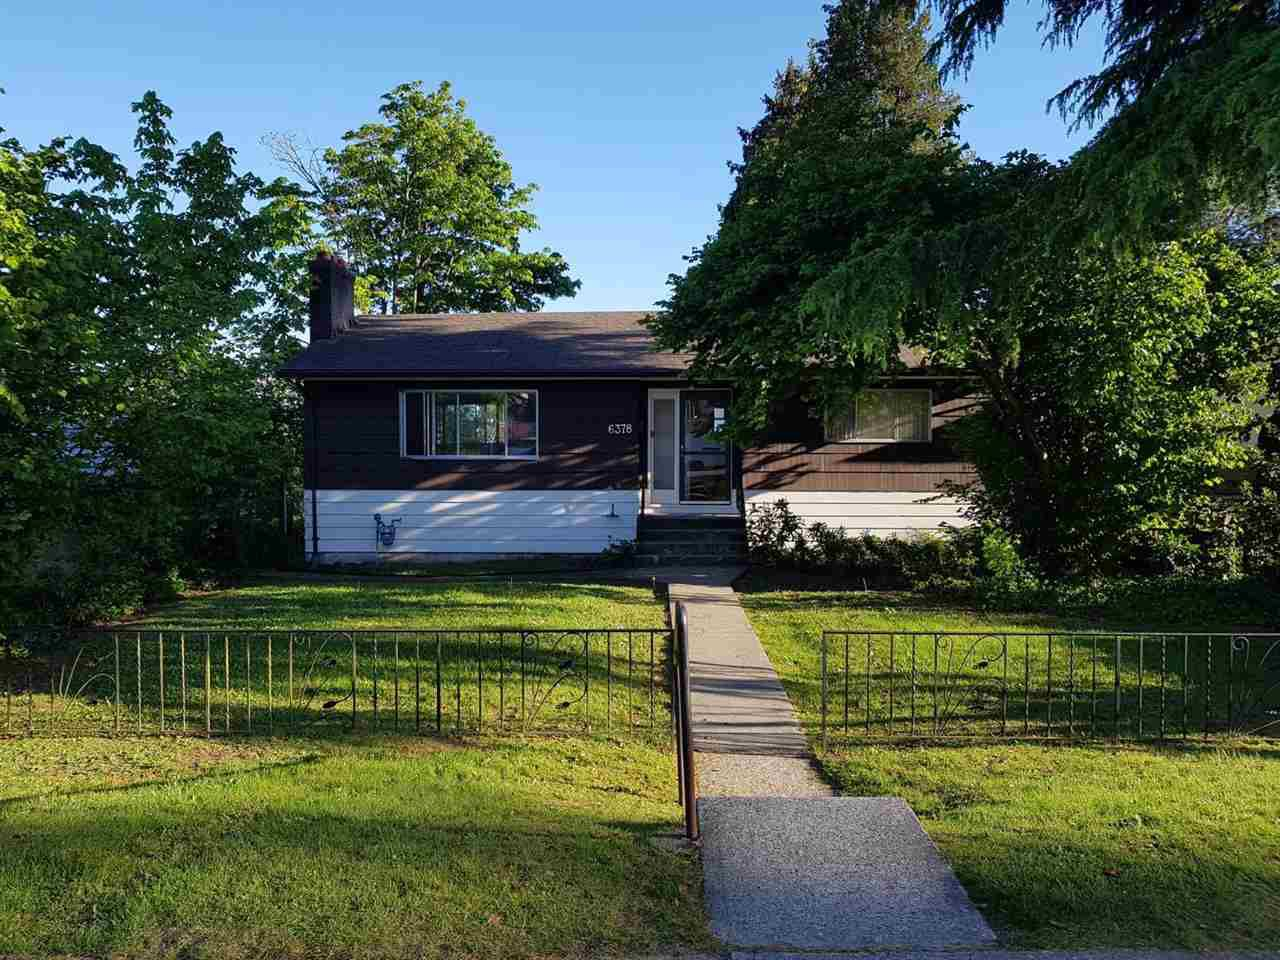 Main Photo: 6378 NEVILLE Street in Burnaby: South Slope House for sale (Burnaby South)  : MLS®# R2170763